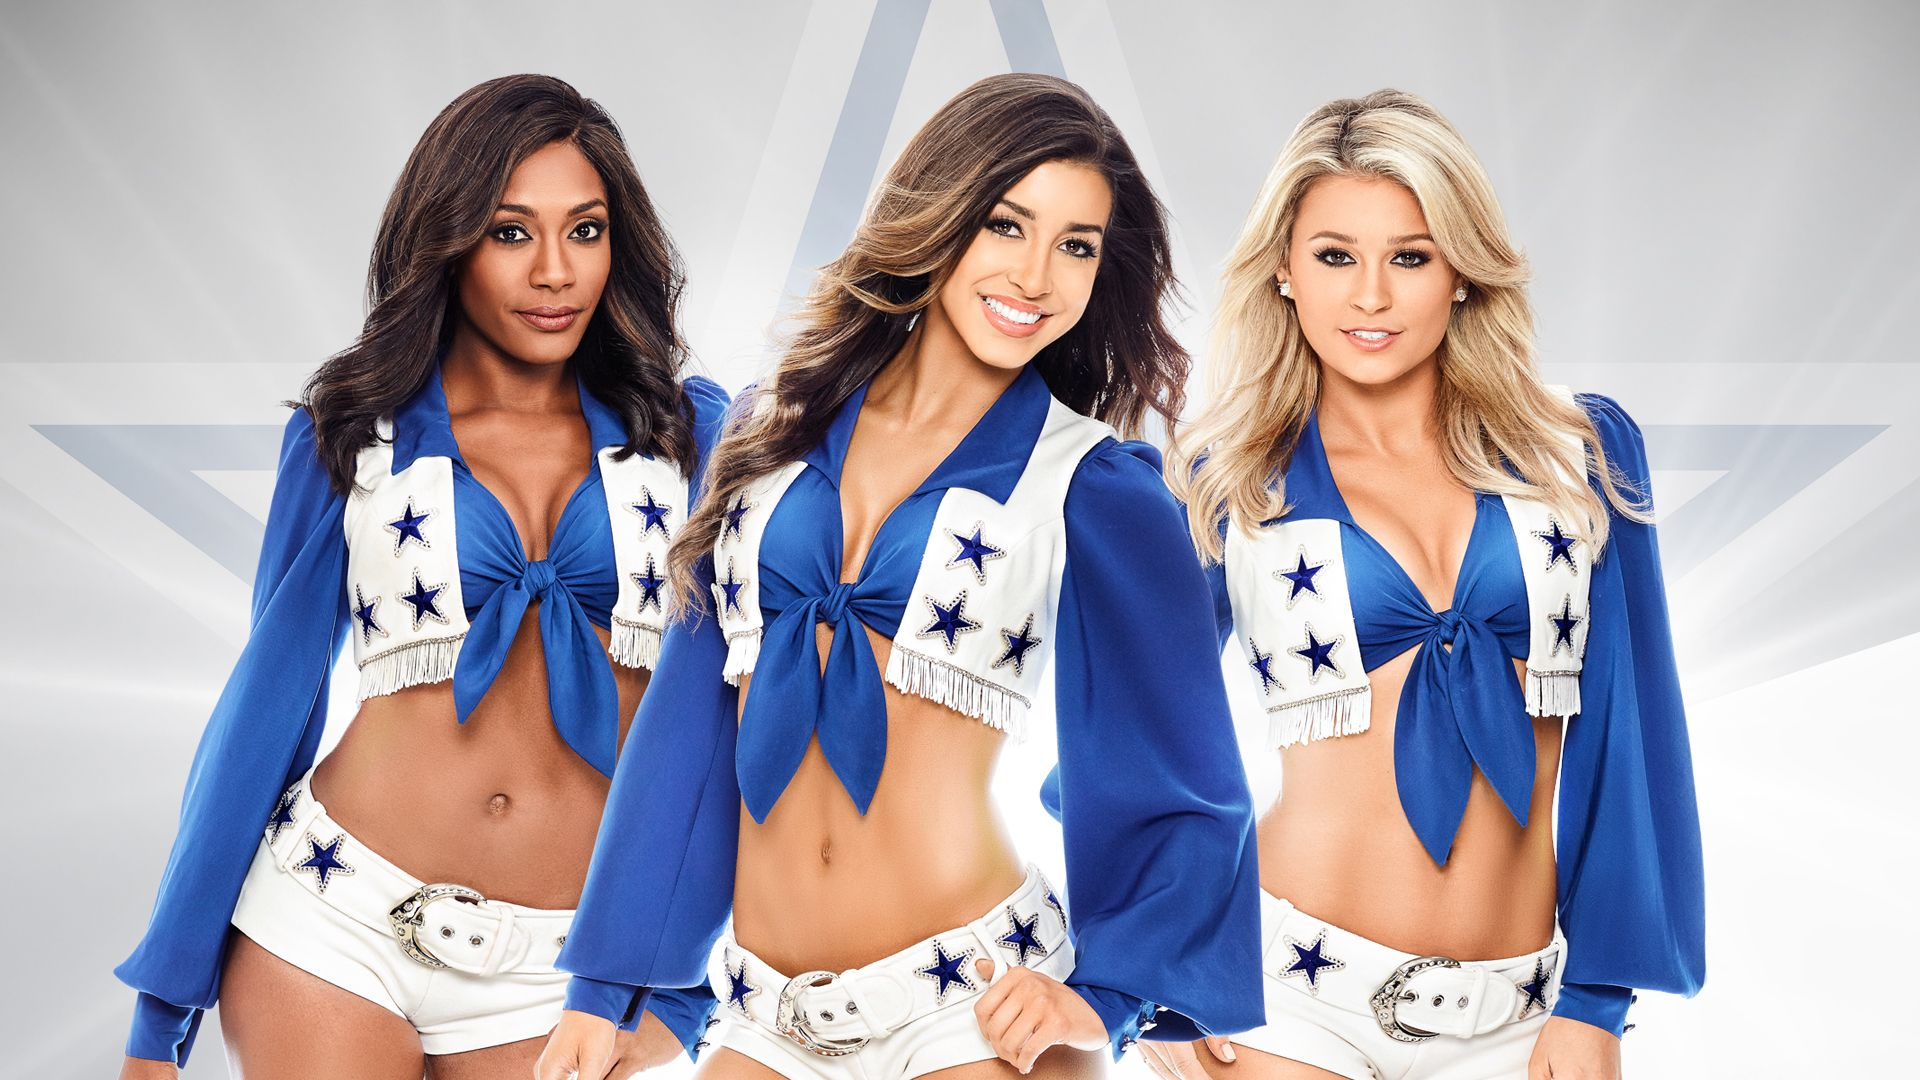 Dallas Cowboys Cheerleaders Making The Team Season 14 Episodes